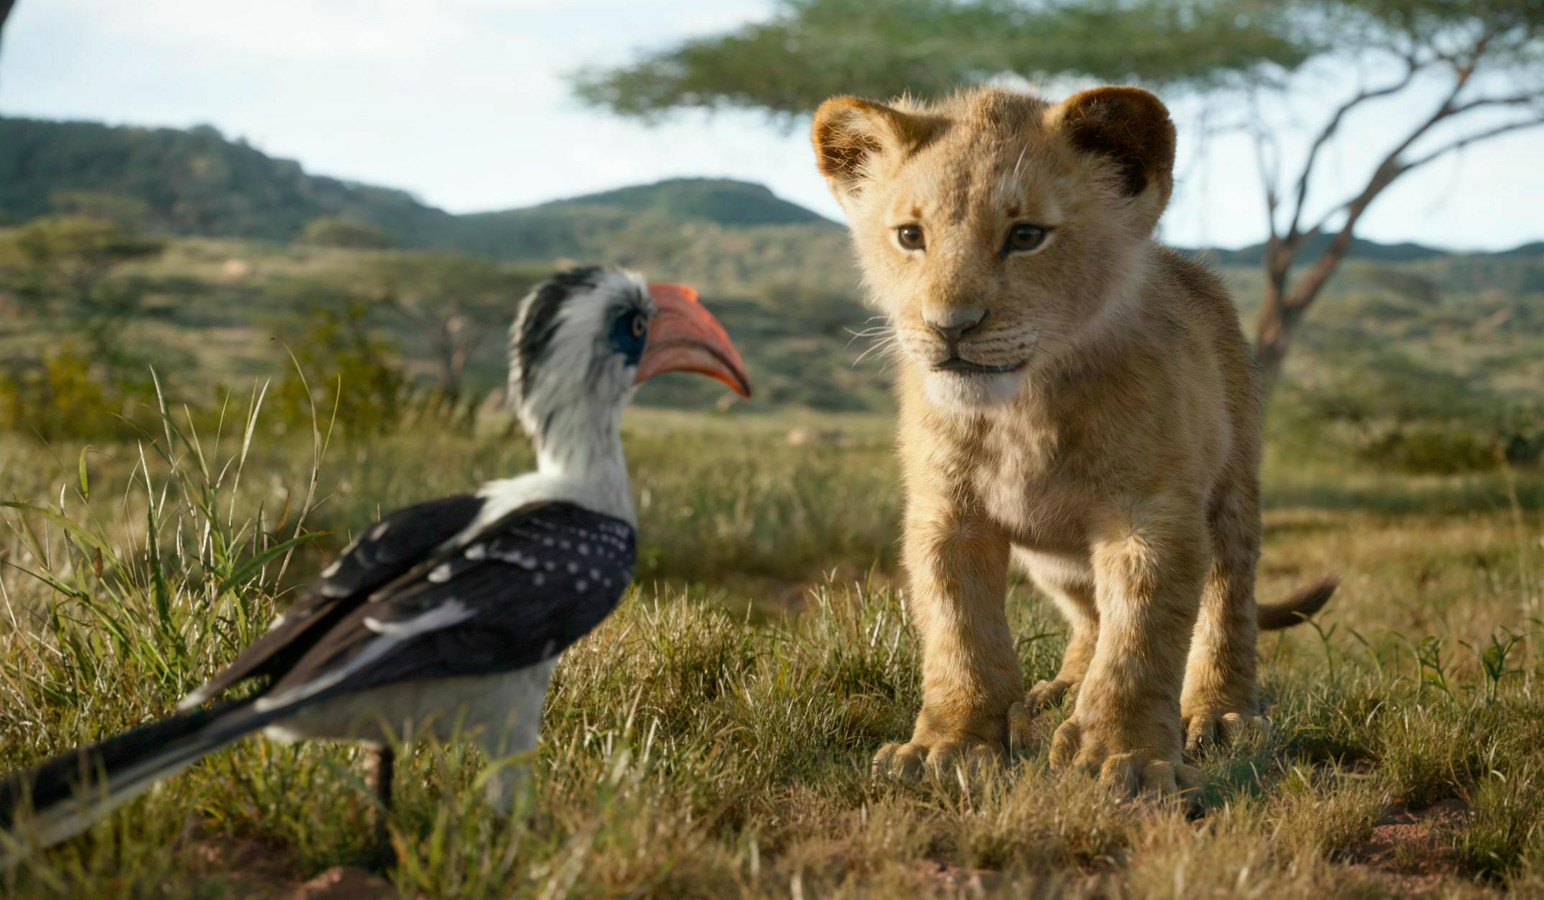 Zazu en Simba in The Lion King.